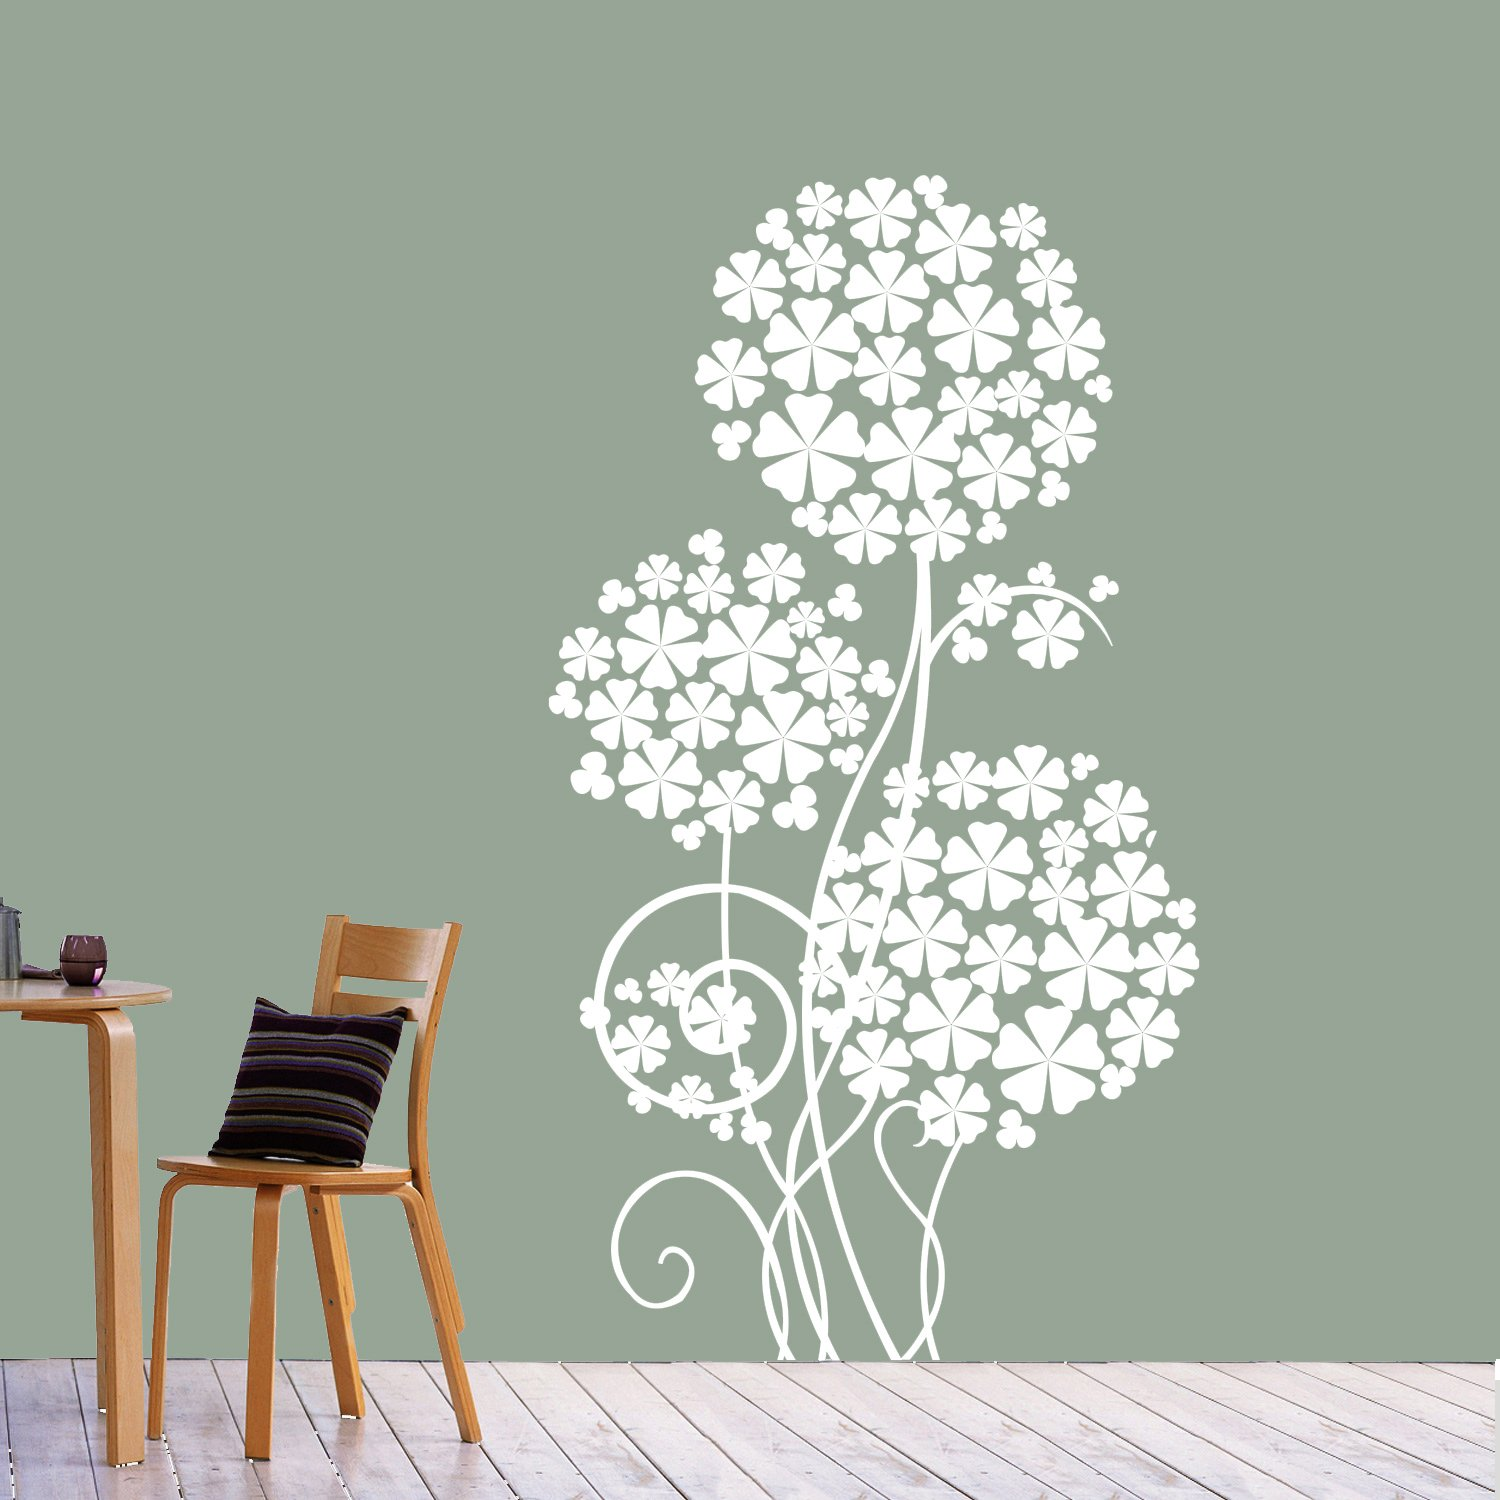 Buy Creative Width Flower Tree Wall Sticker Decal White Online At Wallpaper 42 Low Prices In India